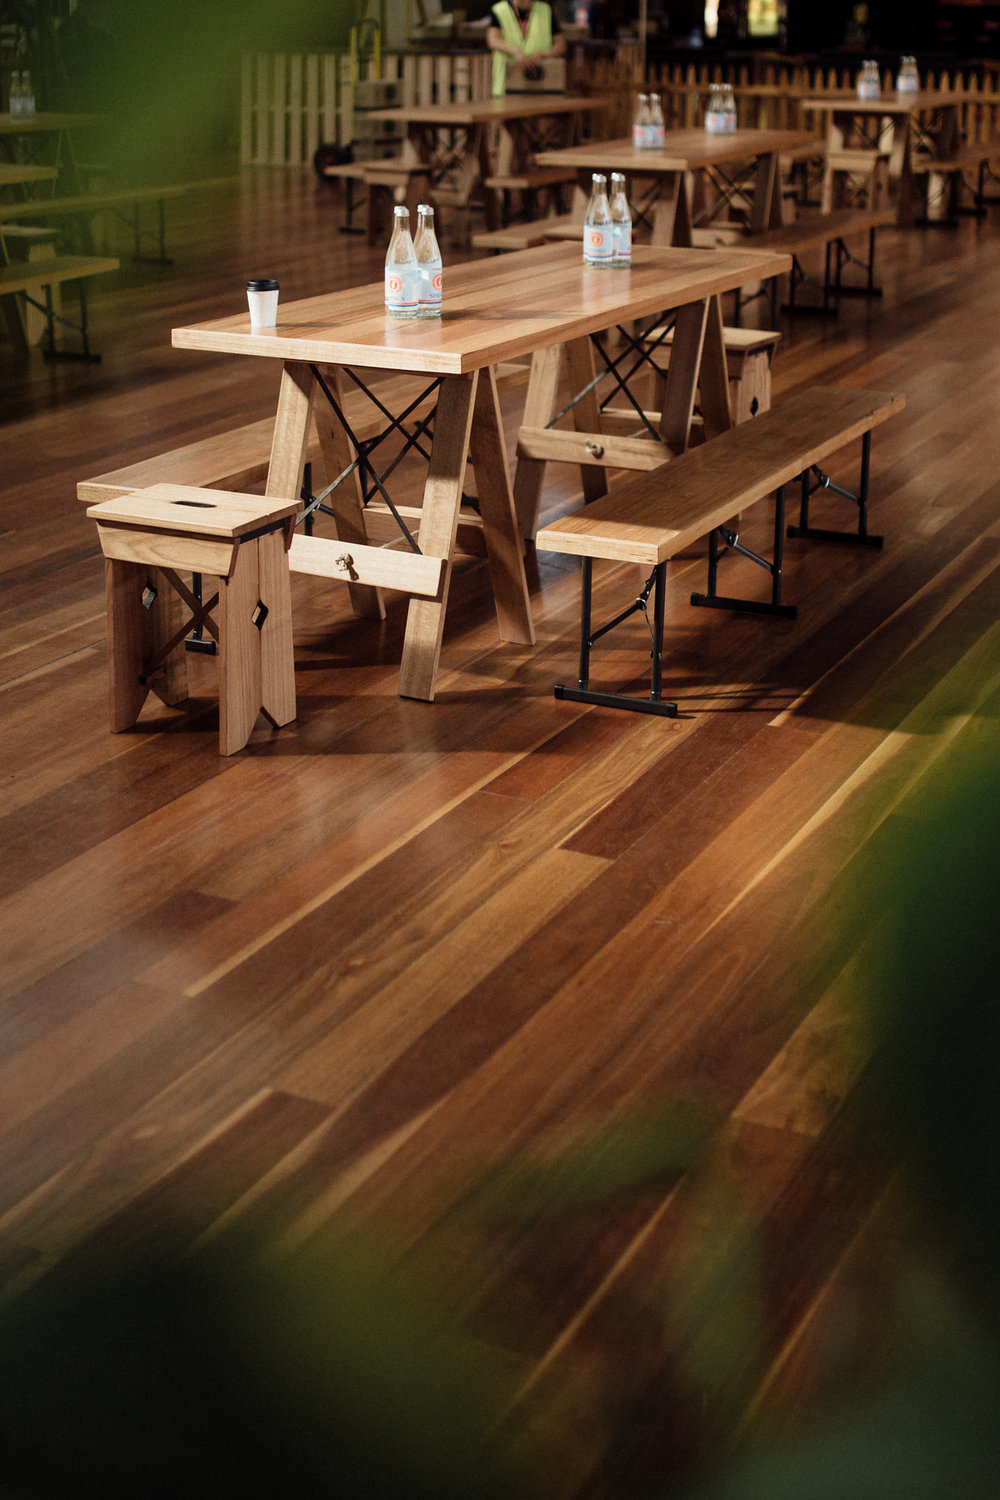 Trestle Tables - Tassie Oak with steel crossbrace trastle legs